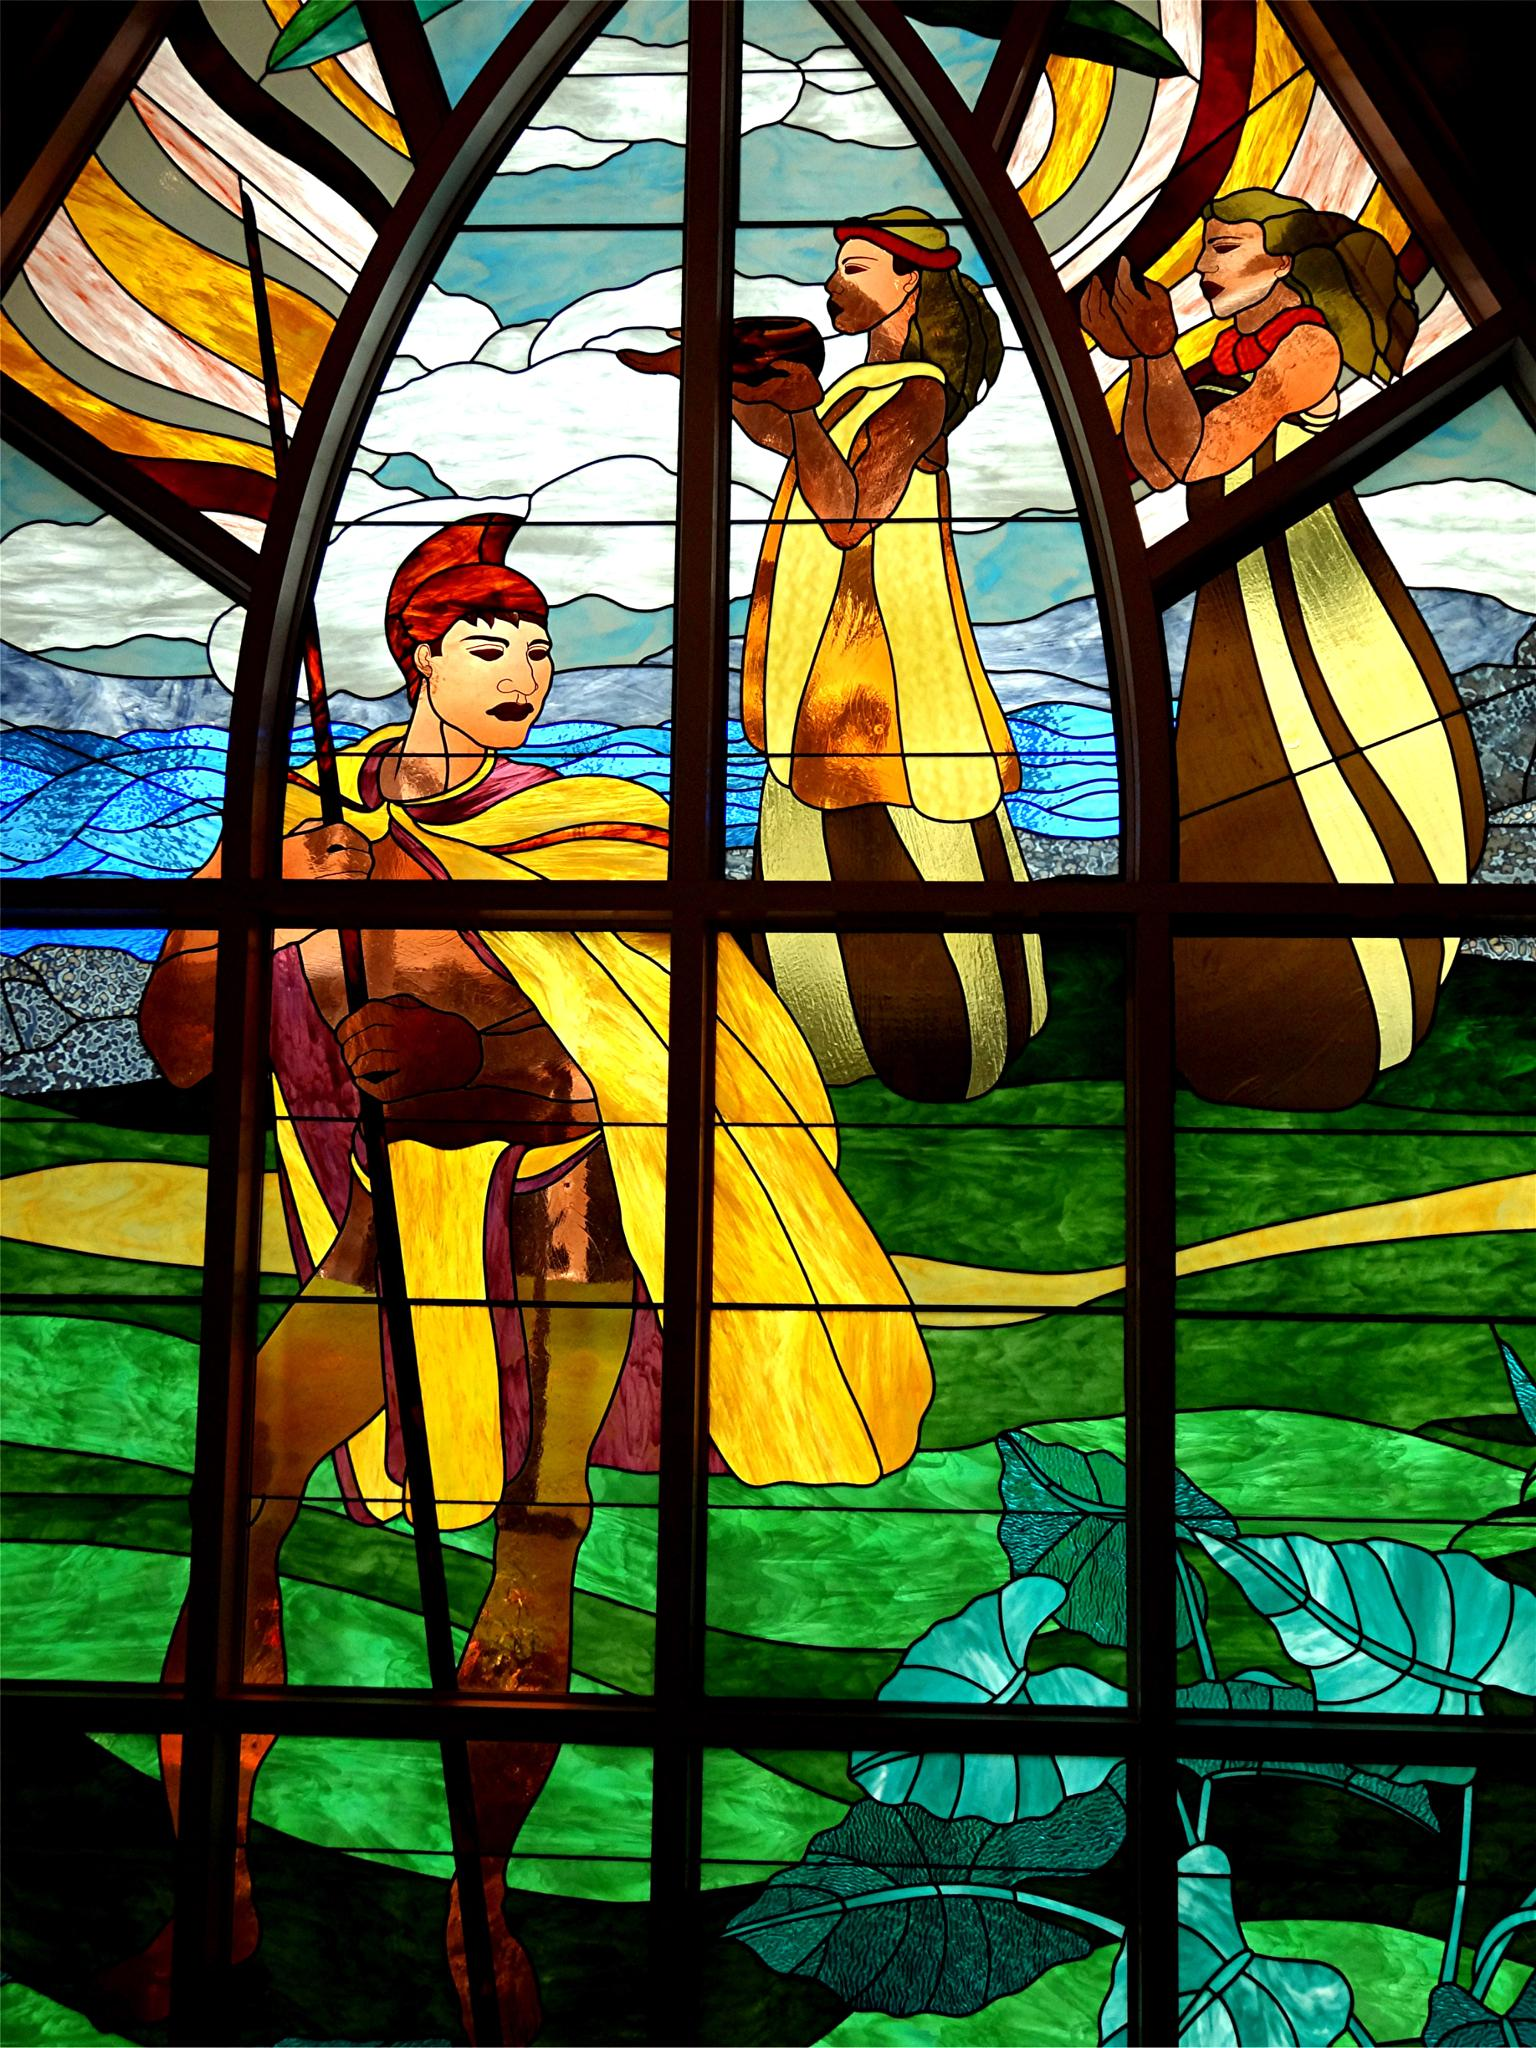 Stained Glass Chapel by Joeski